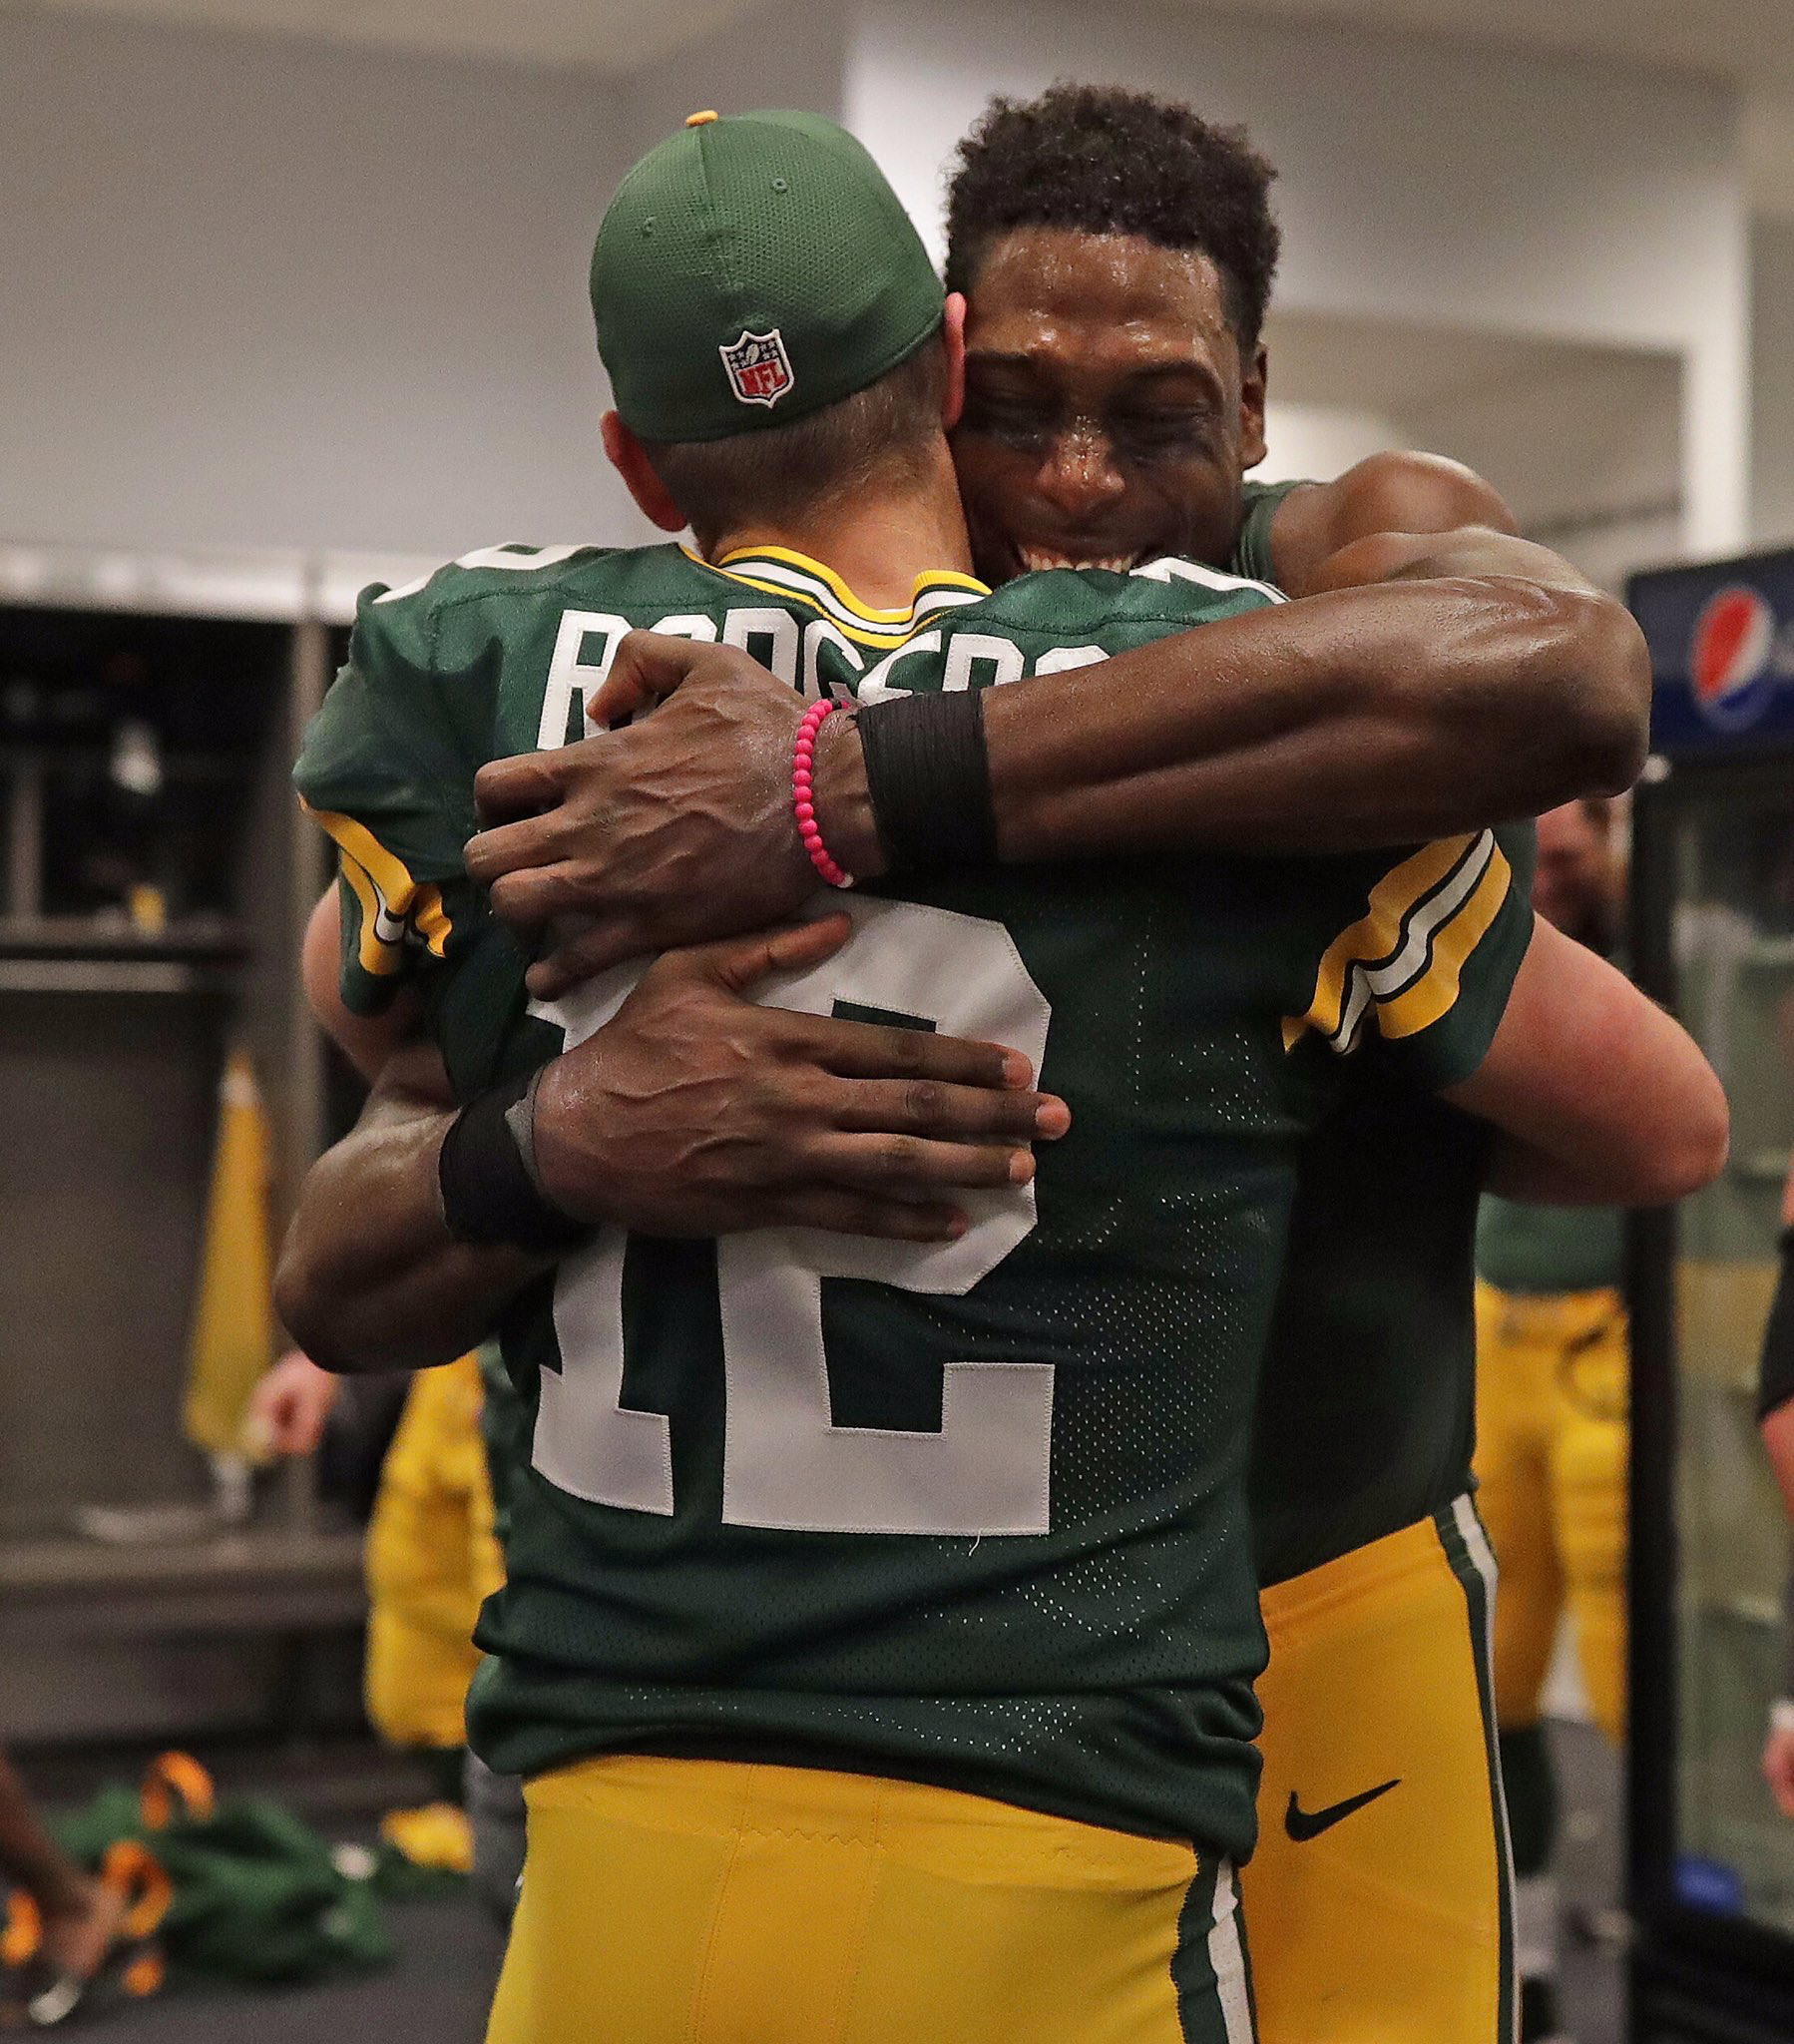 Aaron Rodgers And Jared Cook After Playoff Win Vs Dallas 1 15 17 Green Bay Packers Green Bay Packers Players Nfl Green Bay